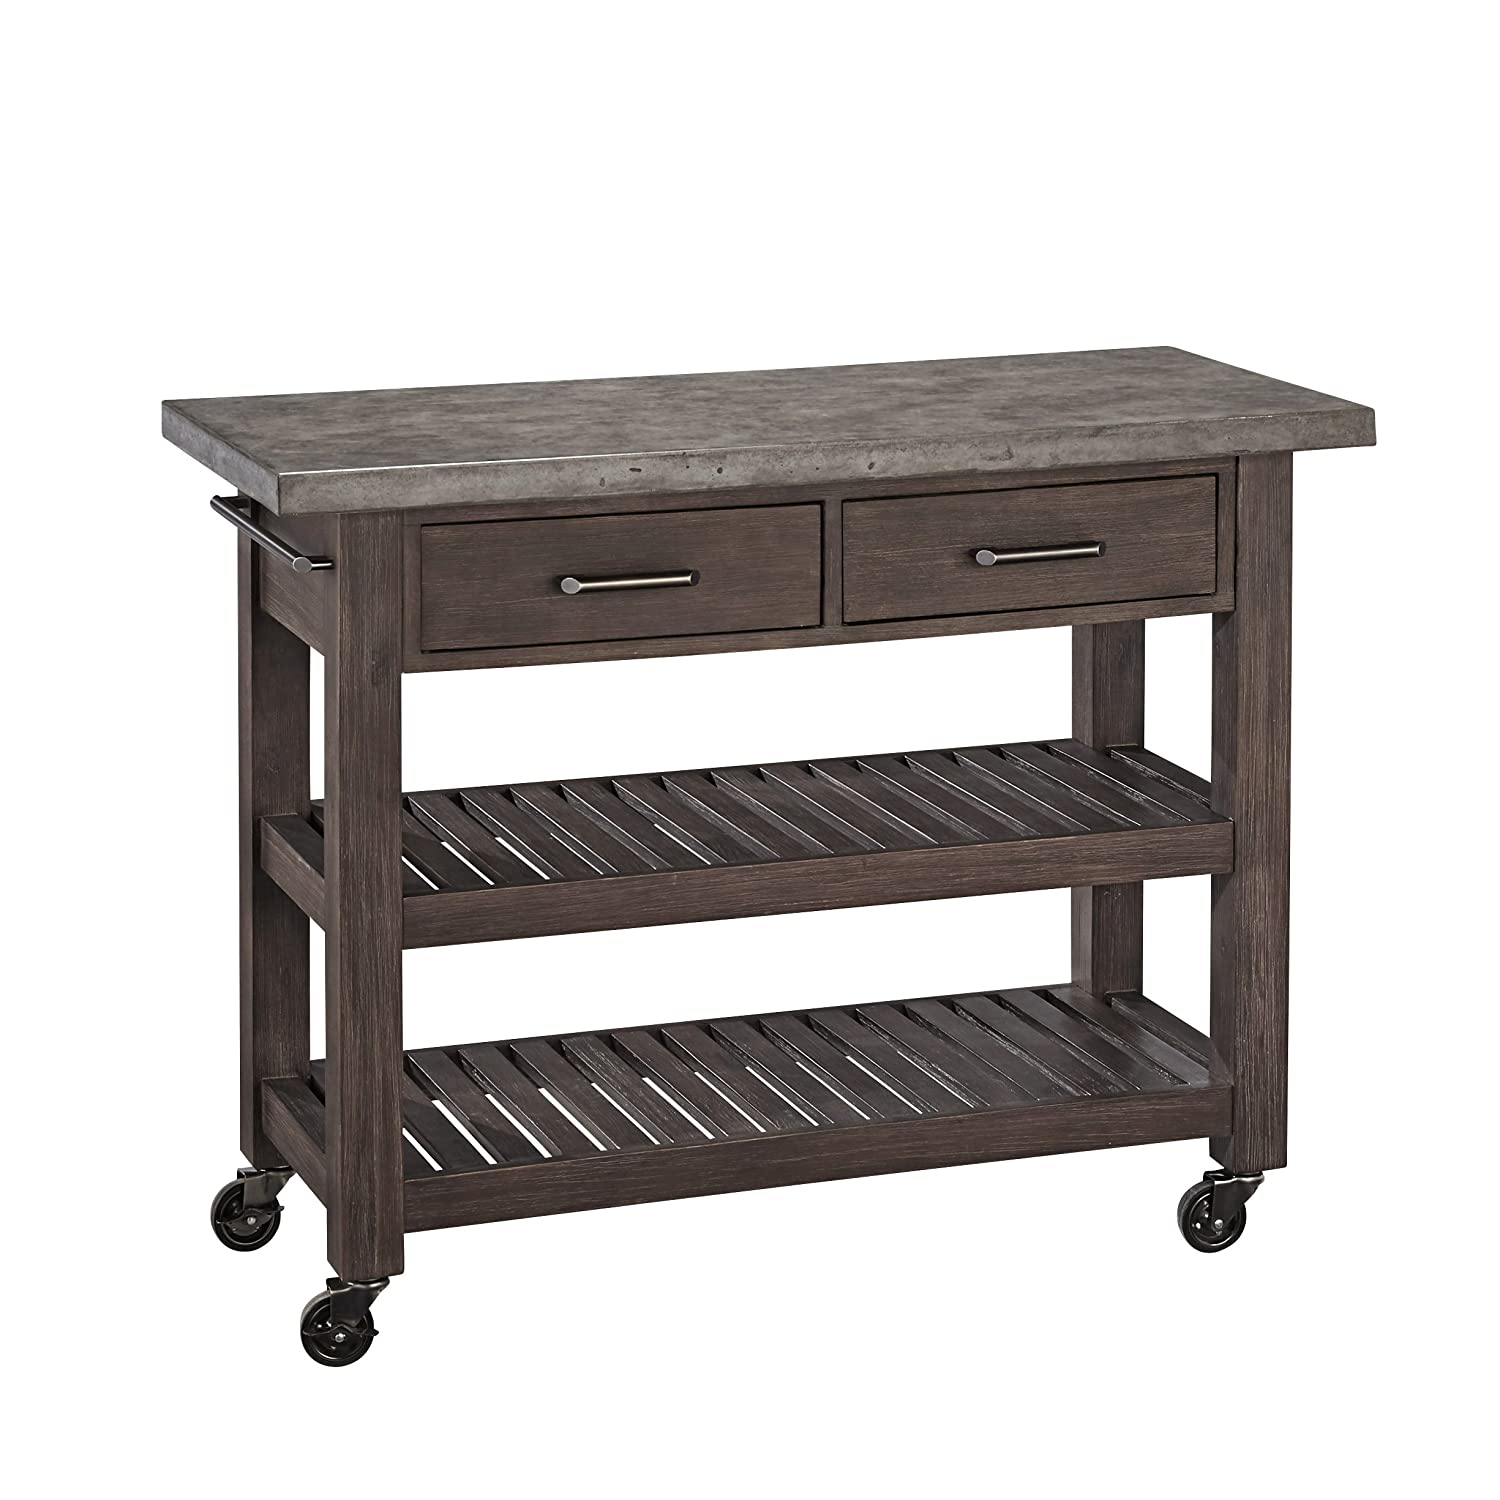 Amazon.com   Home Styles Concrete Chic Kitchen Cart   Kitchen Islands U0026  Carts